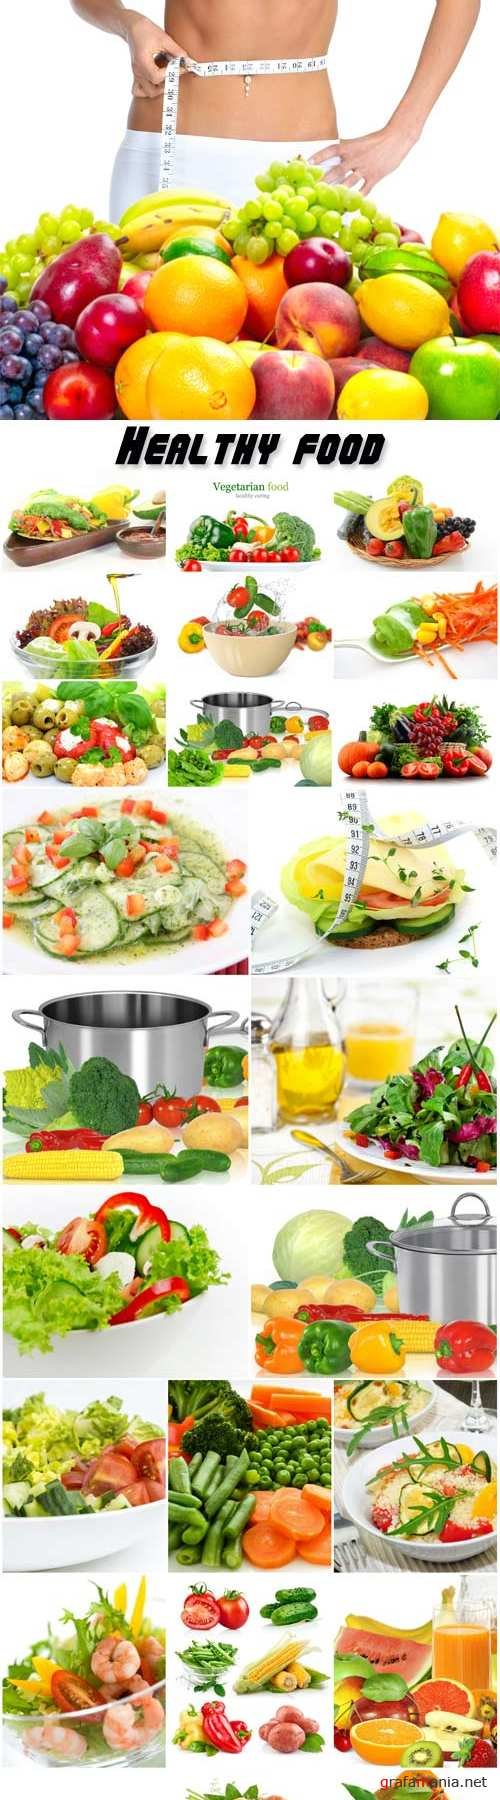 Healthy food, fruits and vegetables, vegetarian dishes